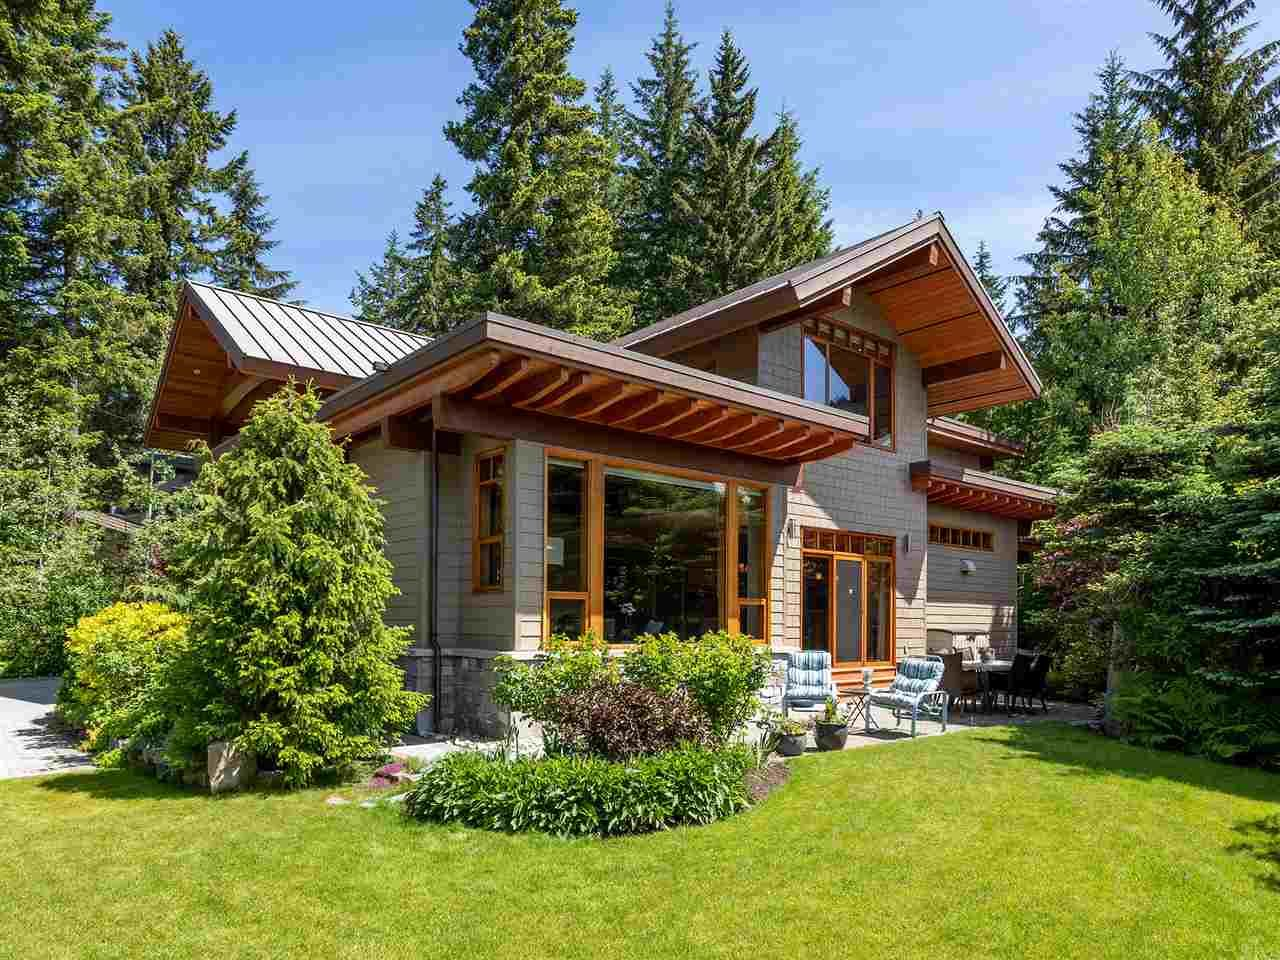 Photo 2: Photos: 3217 ARCHIBALD WAY in Whistler: Alta Vista House for sale : MLS®# R2468991